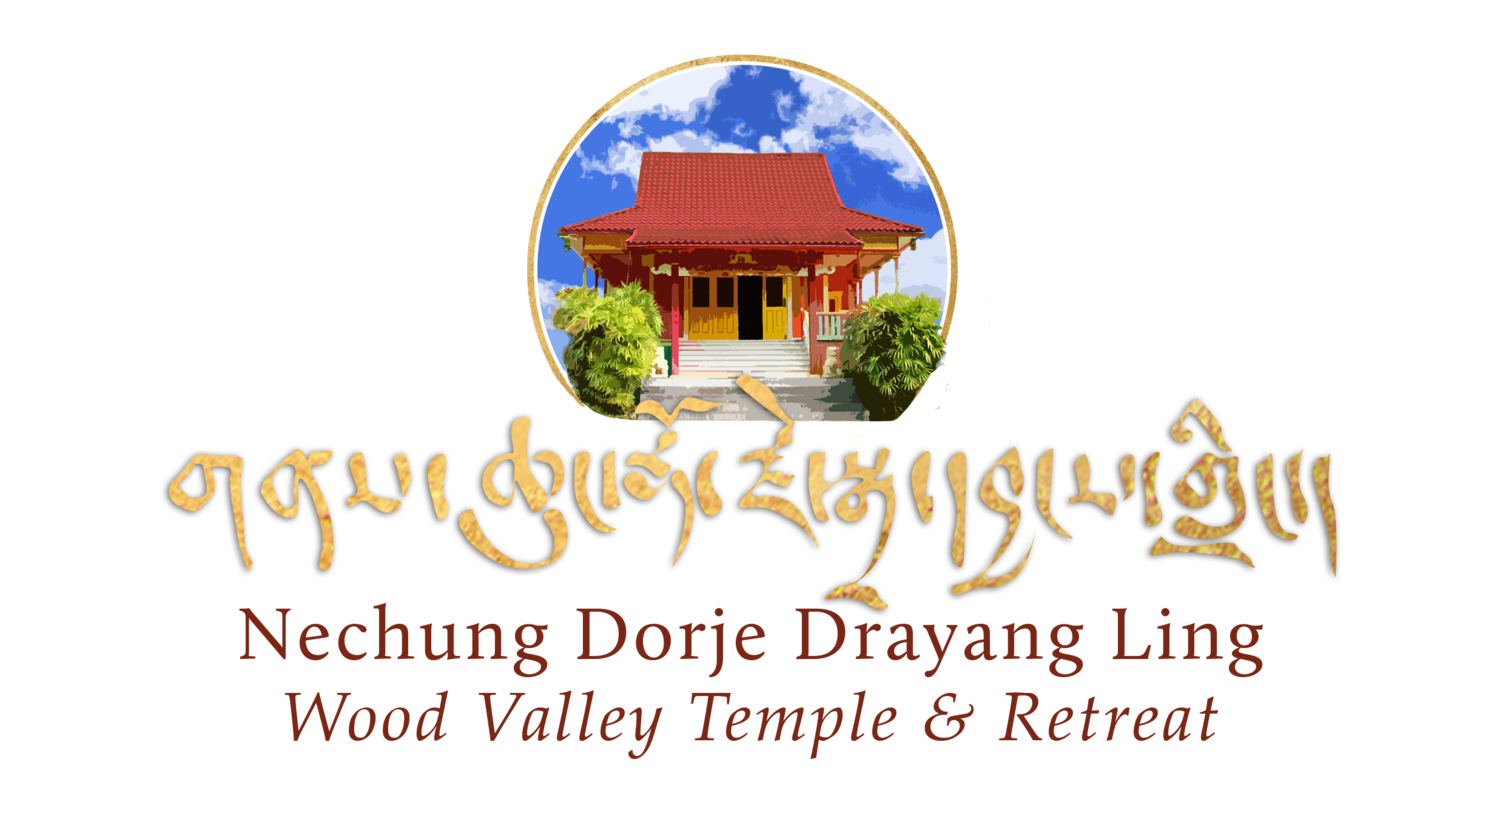 Wood Valley Temple & Guest House